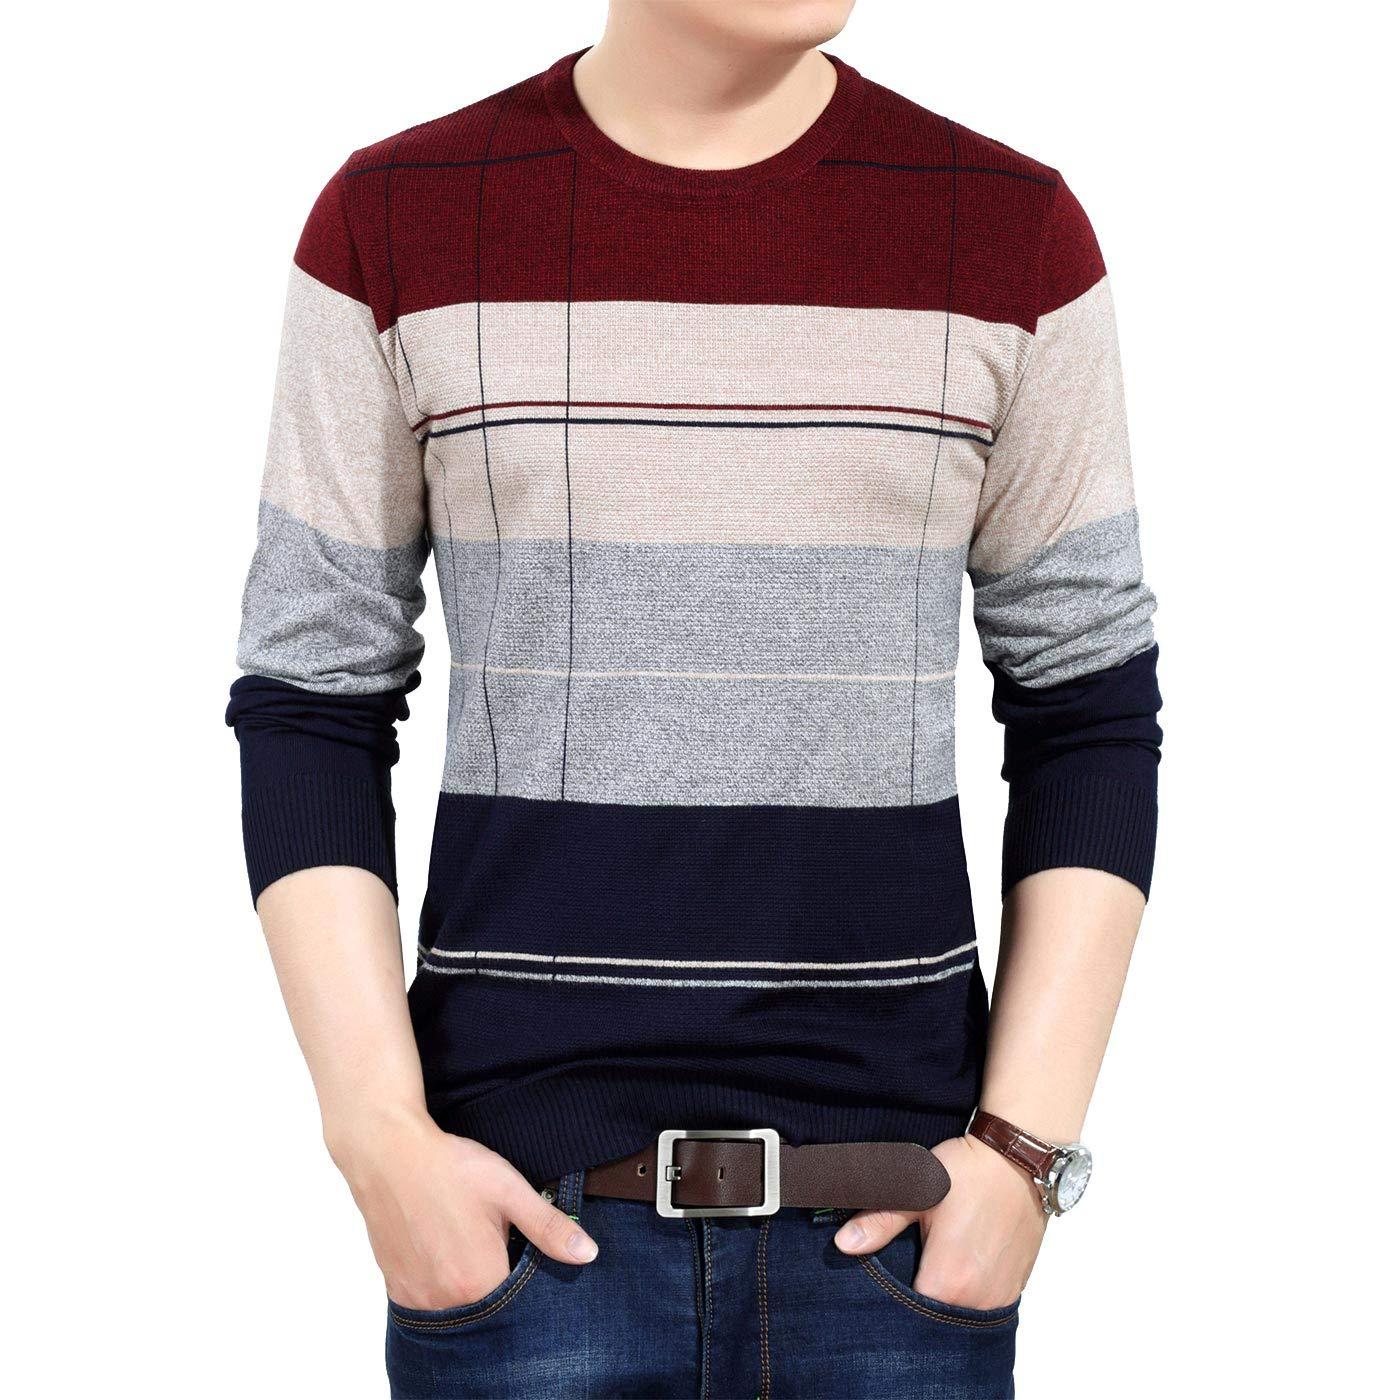 AIEOE Men Casual Stripe Sweater Soft Slim Modern Tops